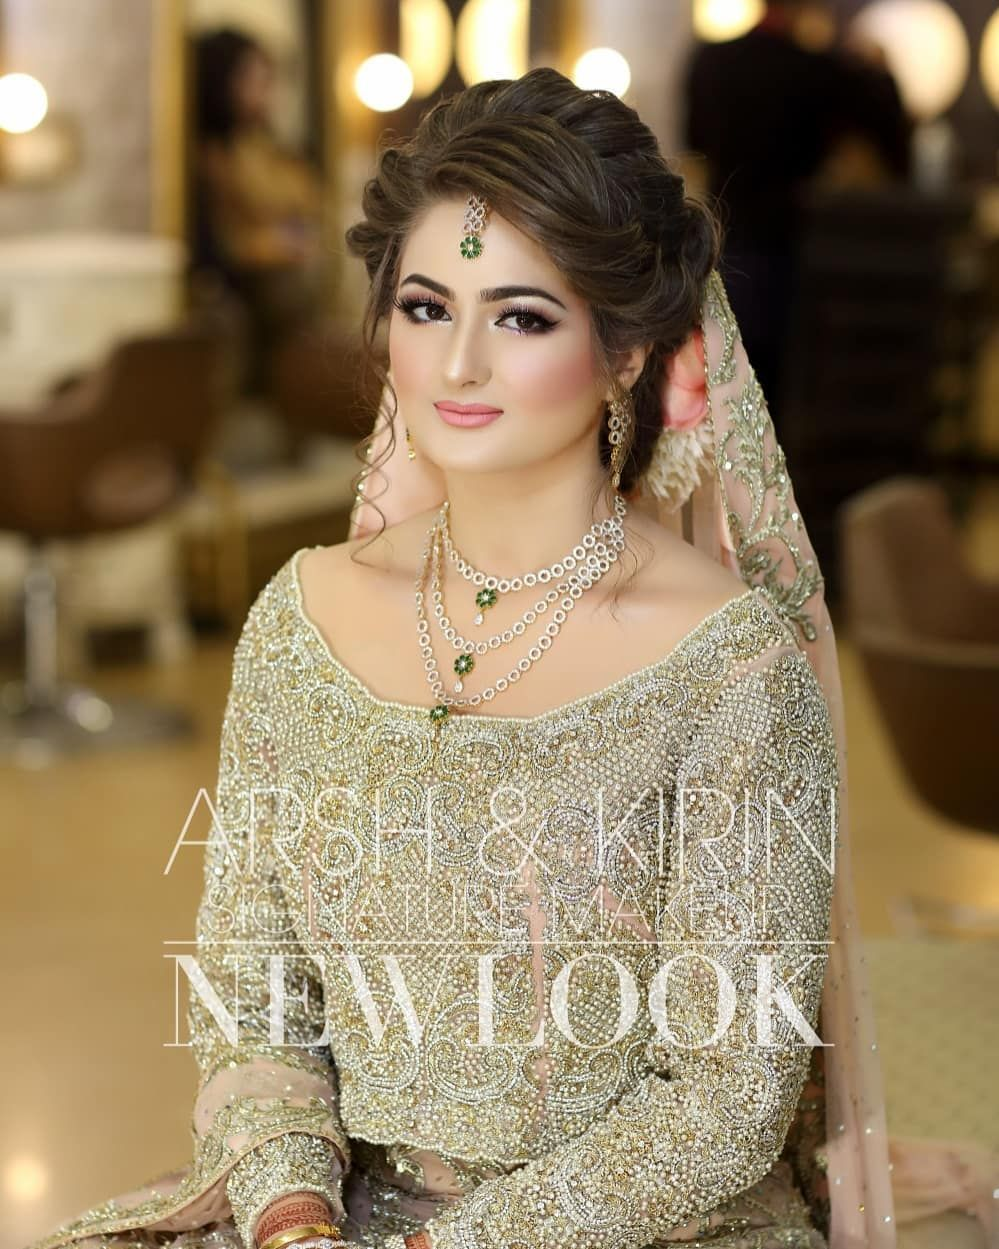 Image May Contain One Or More People Pakistani Bridal Makeup Hairstyles Pakistani Bridal Makeup Pakistani Bridal Hairstyles